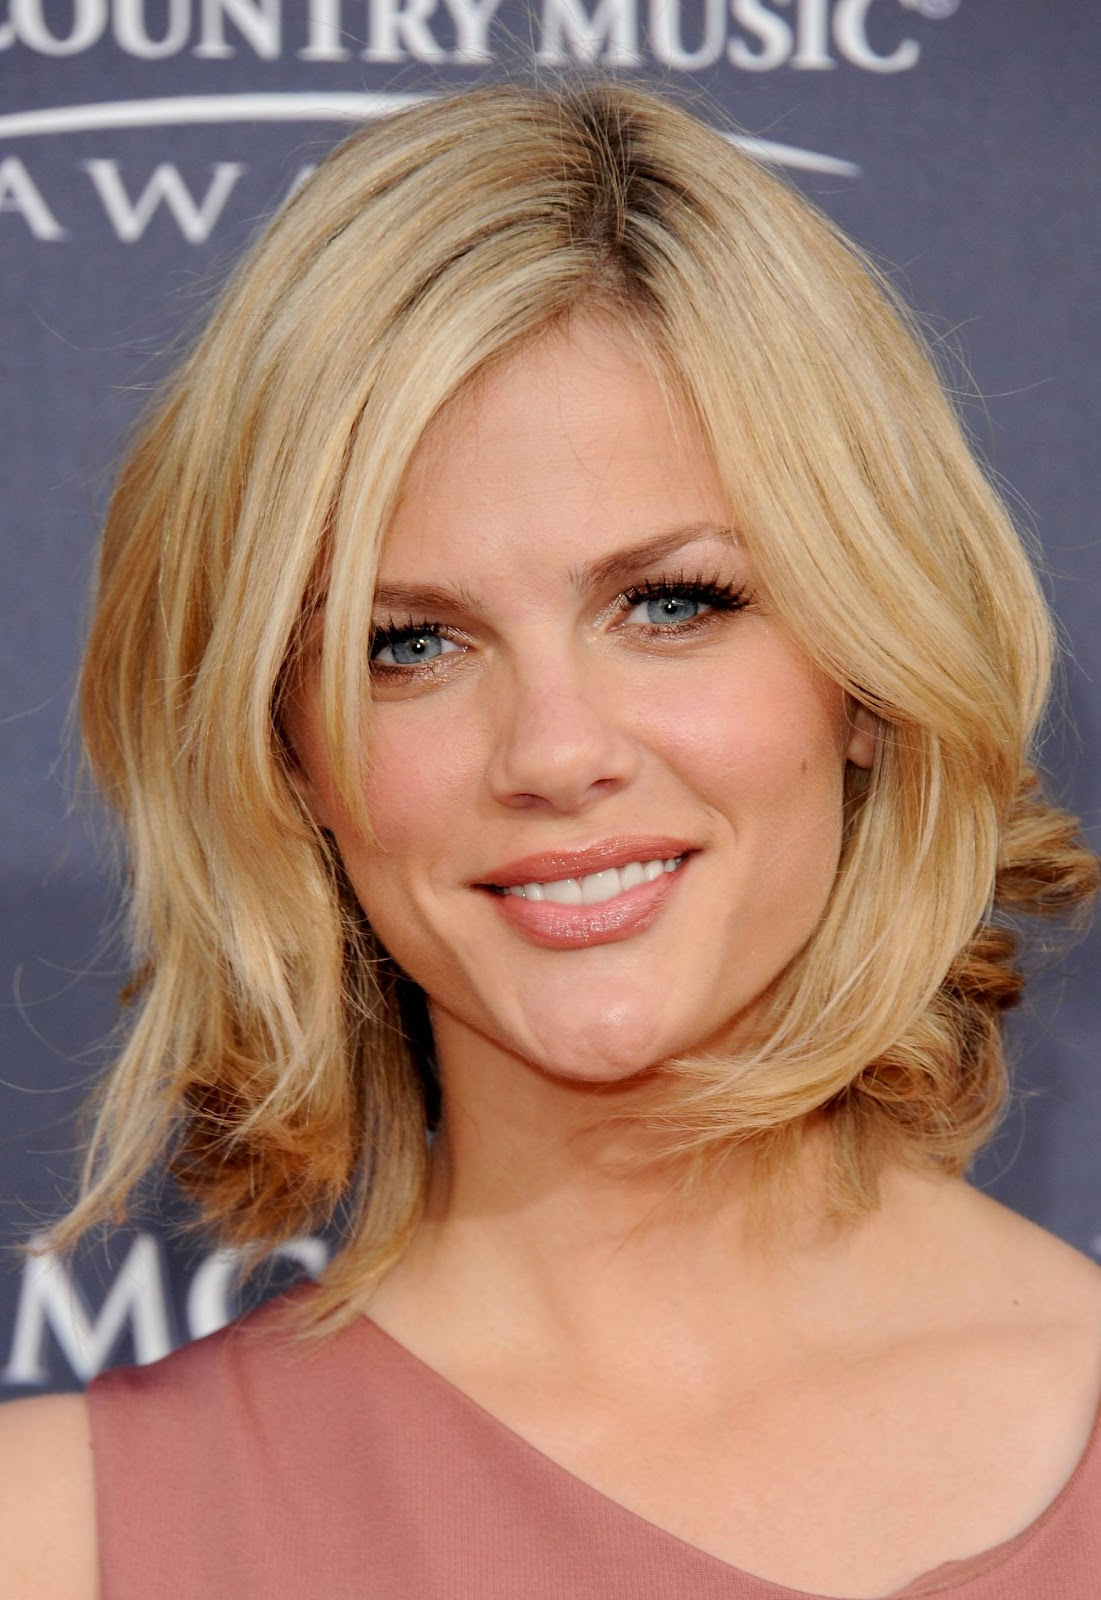 http://2.bp.blogspot.com/-a5d1flZ9HHM/TivO0HqZMWI/AAAAAAAADjs/0r3W_xTlqQ8/s1600/shoulder-length-layered-hairstyles-for-2011-3.jpg